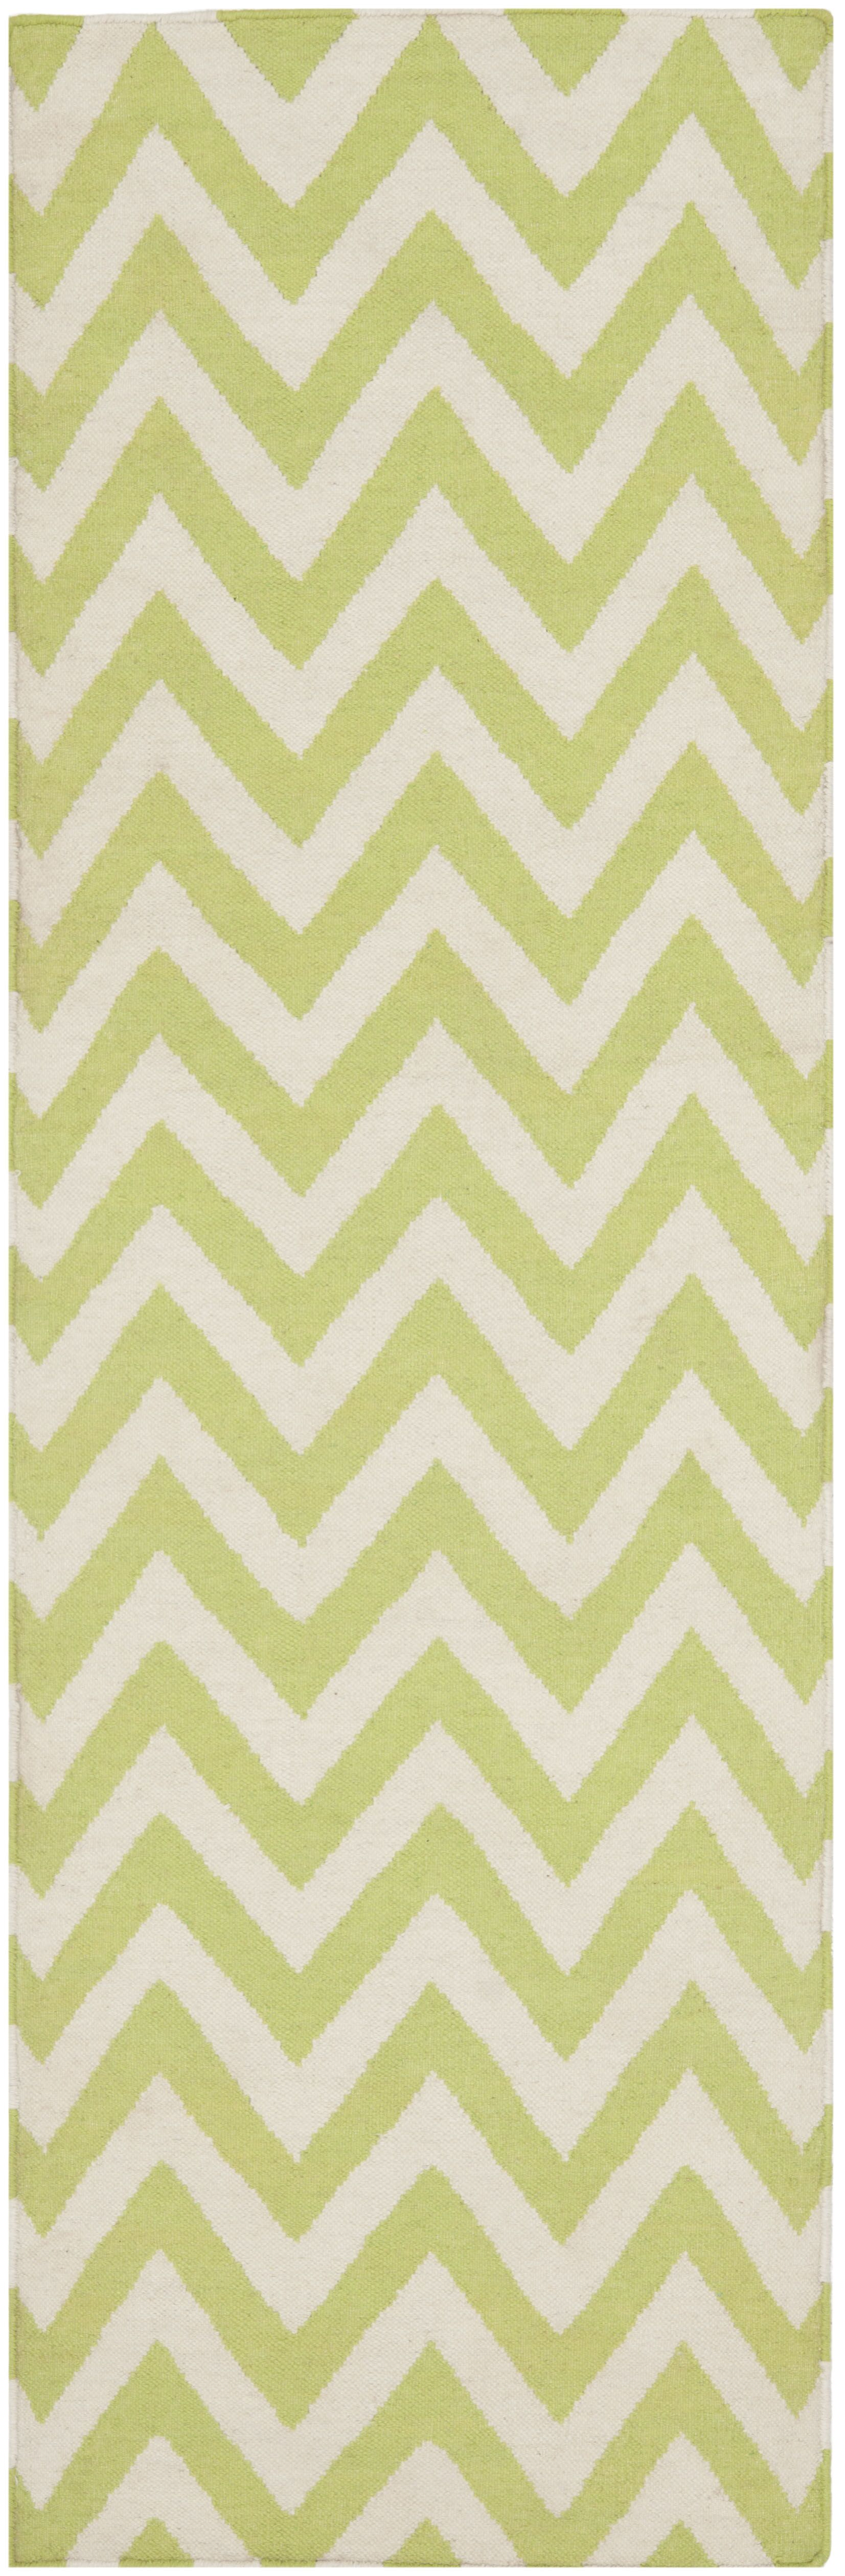 Moves Like Zigzagger Hand-Woven Wool Green/Ivory Area Rug Rug Size: Runner 2'6